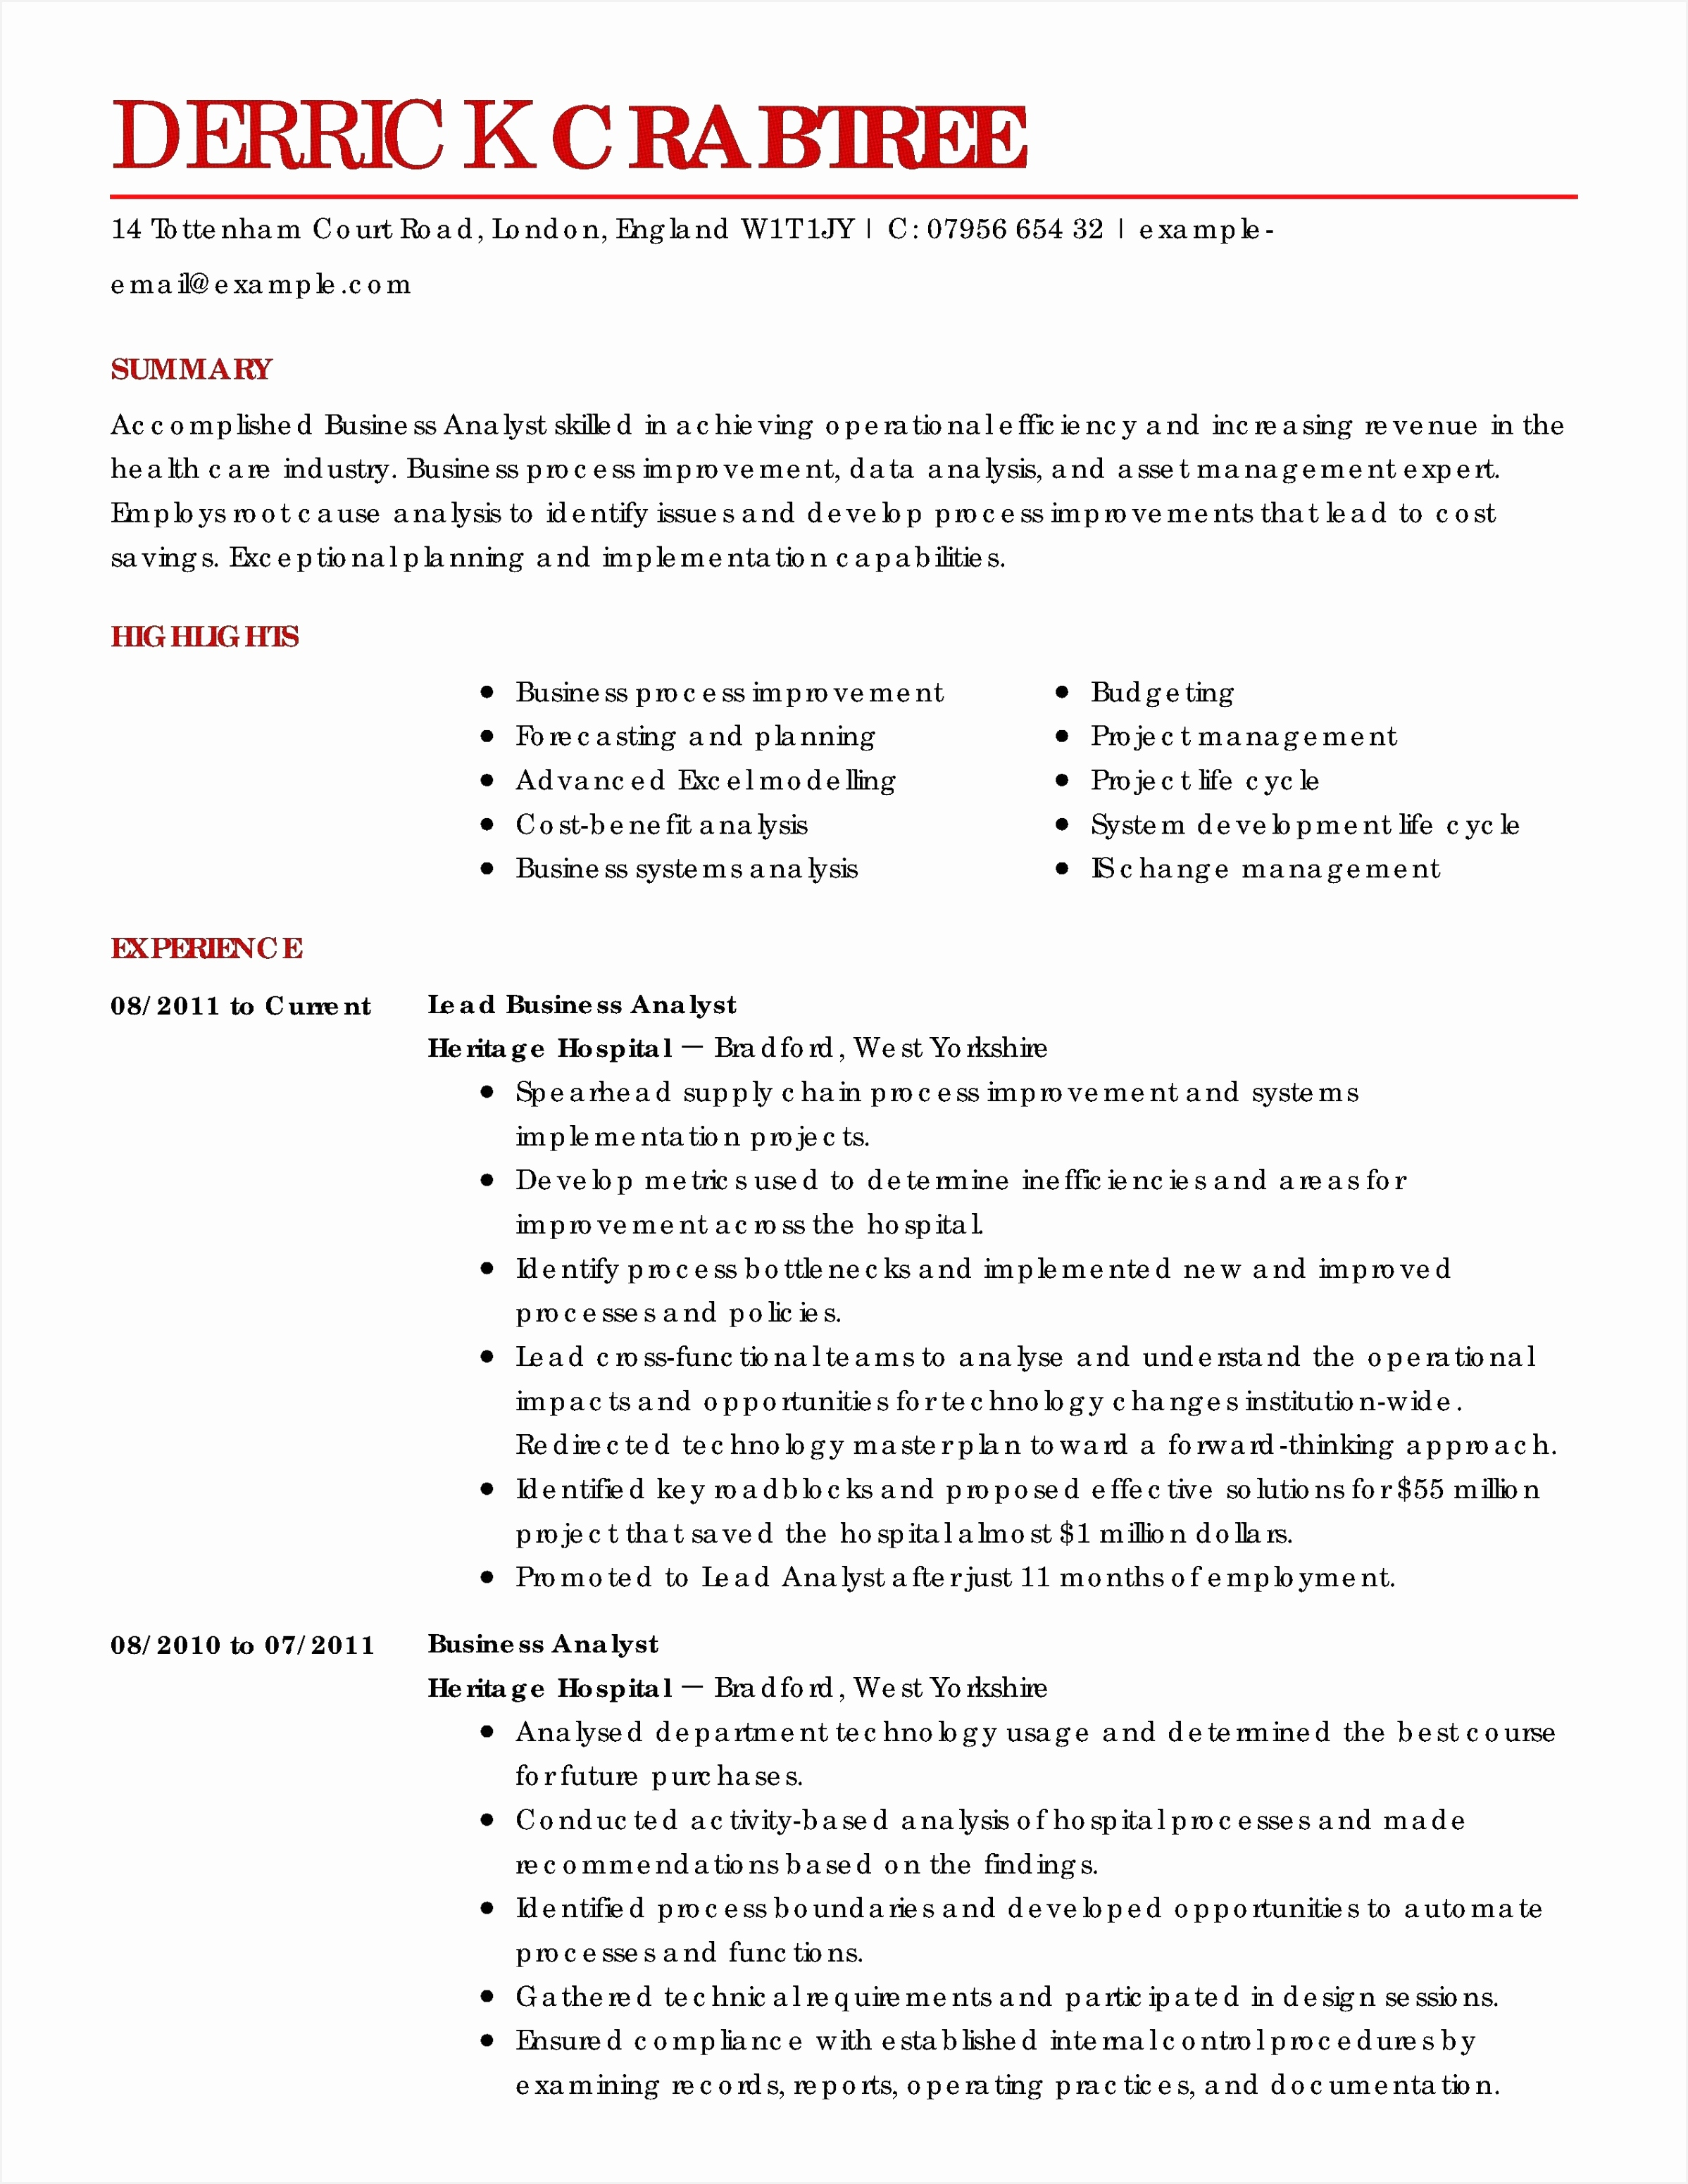 Abilities for Resume Examples Guhts Best Of Resume Samples Business Analyst Valid Resume Skills and Abilities31022397